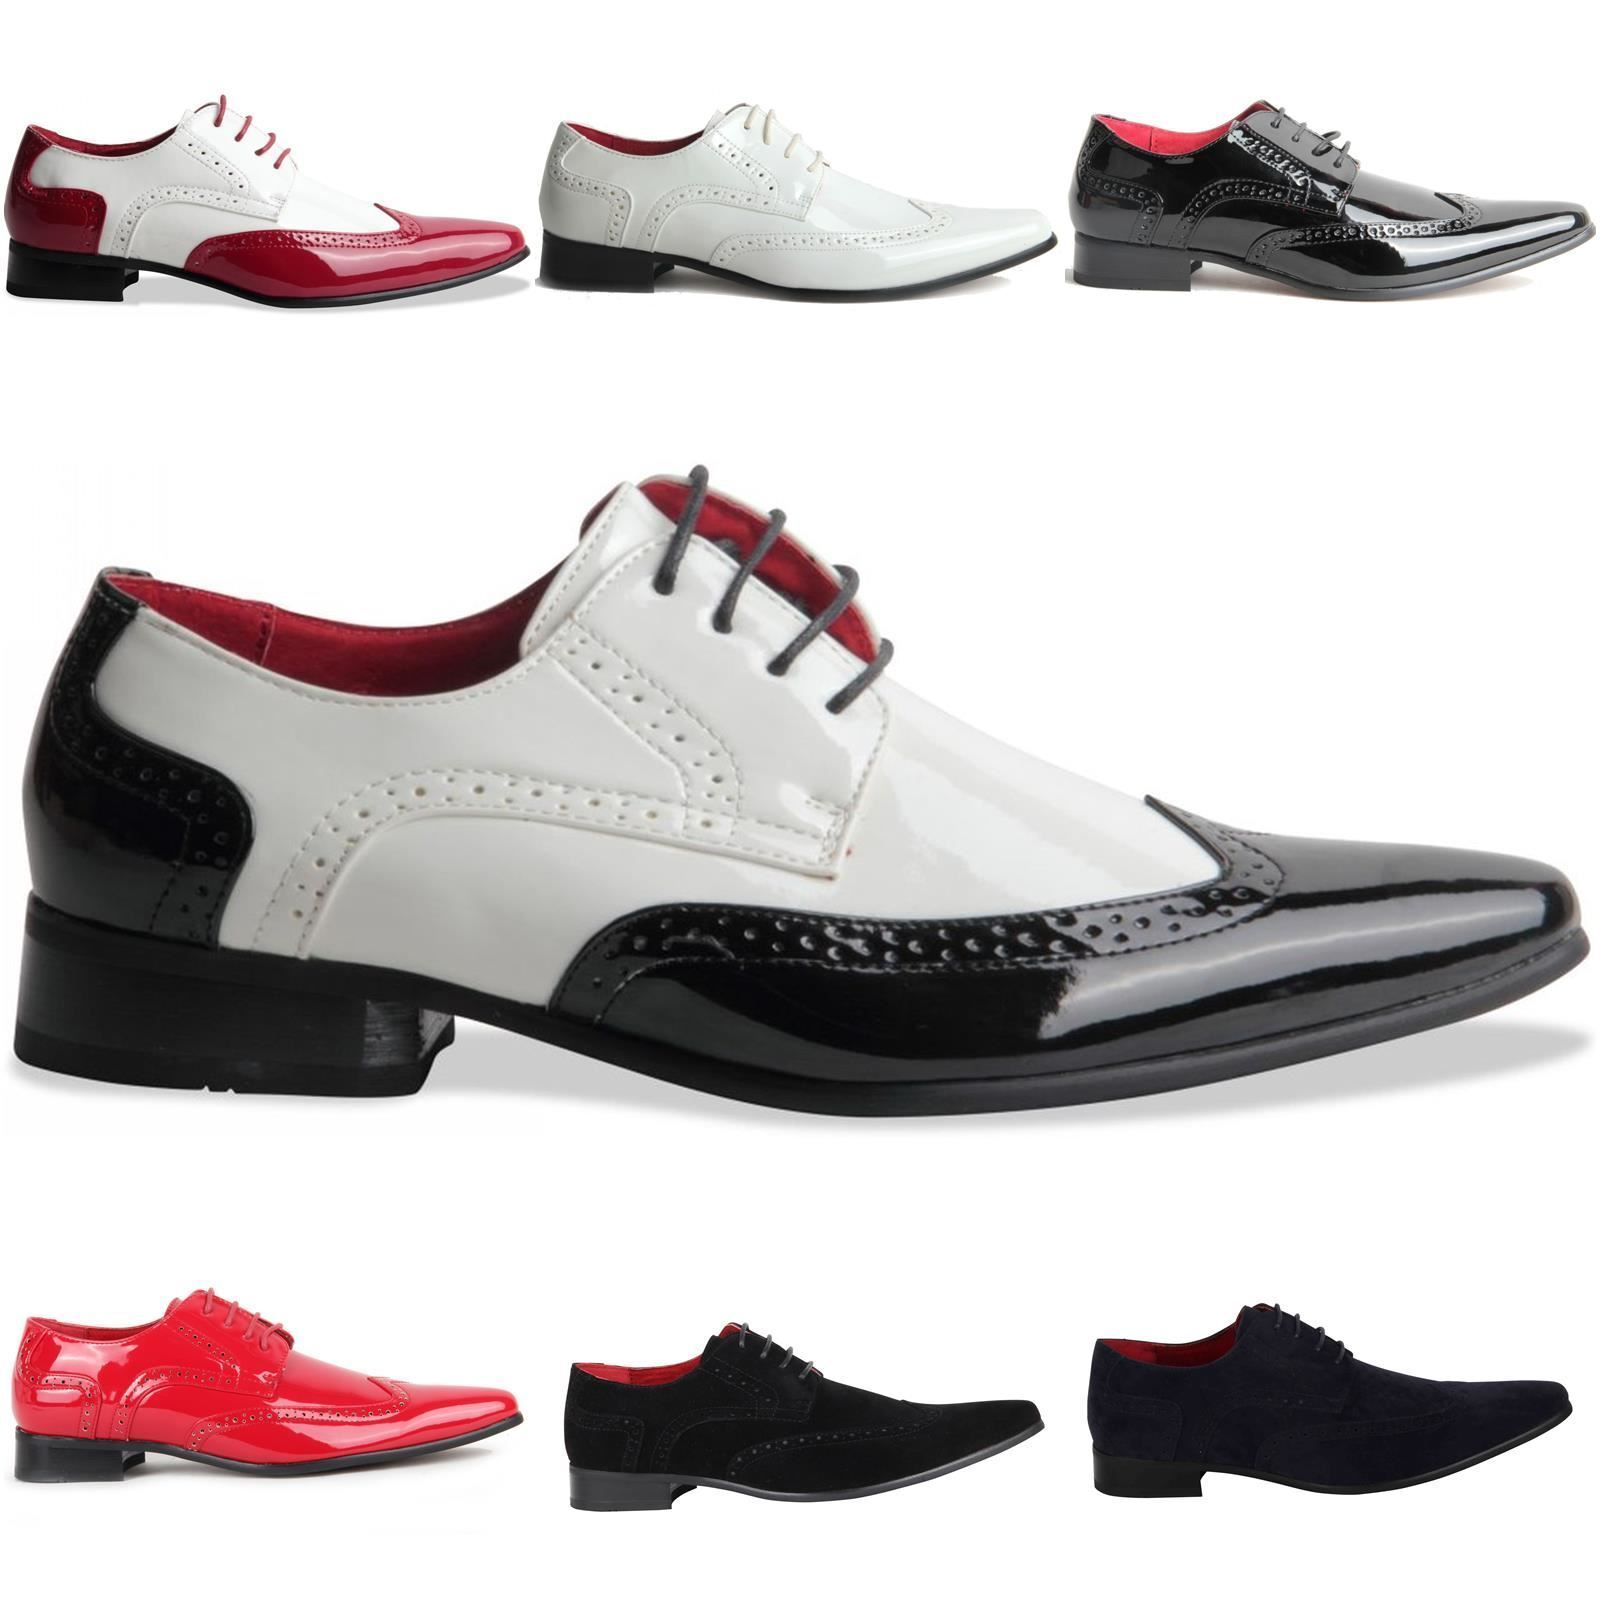 Rossellini Men Lace-up Smart shoes, Pointed Toe Brogue, Casual Party Footwear.